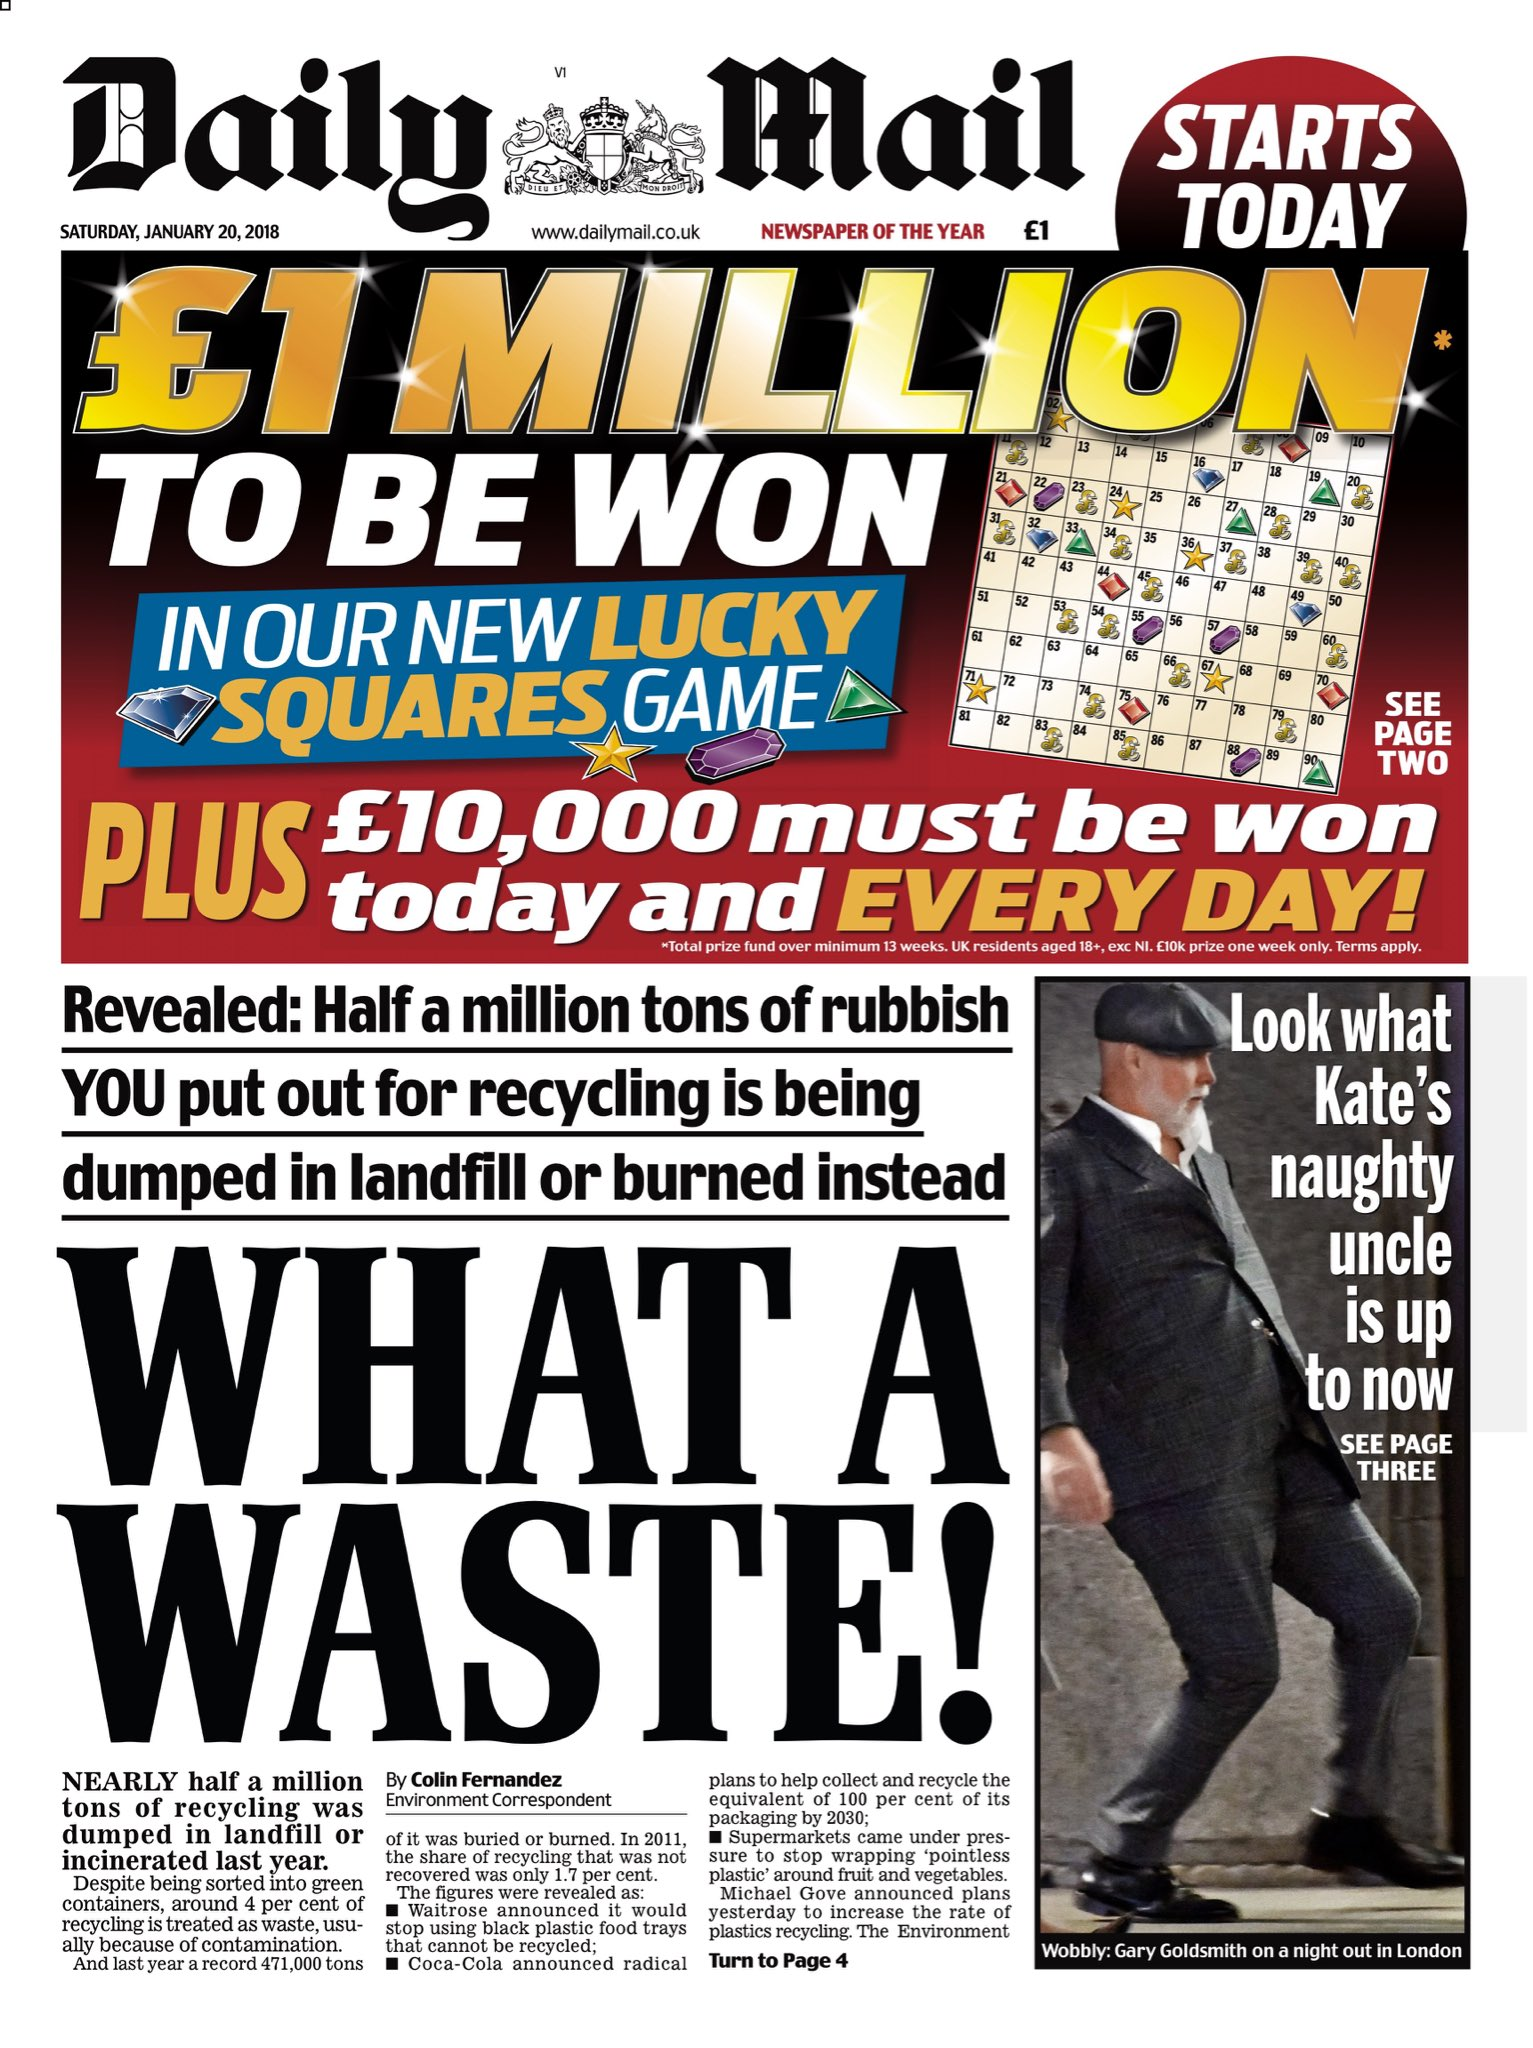 """Saturday's Daily MAIL: """"What A Waste!"""" #bbcpapers #tomorrowspaperstoday (via @AllieHBNews) https://t.co/FZN8ywLdJY"""